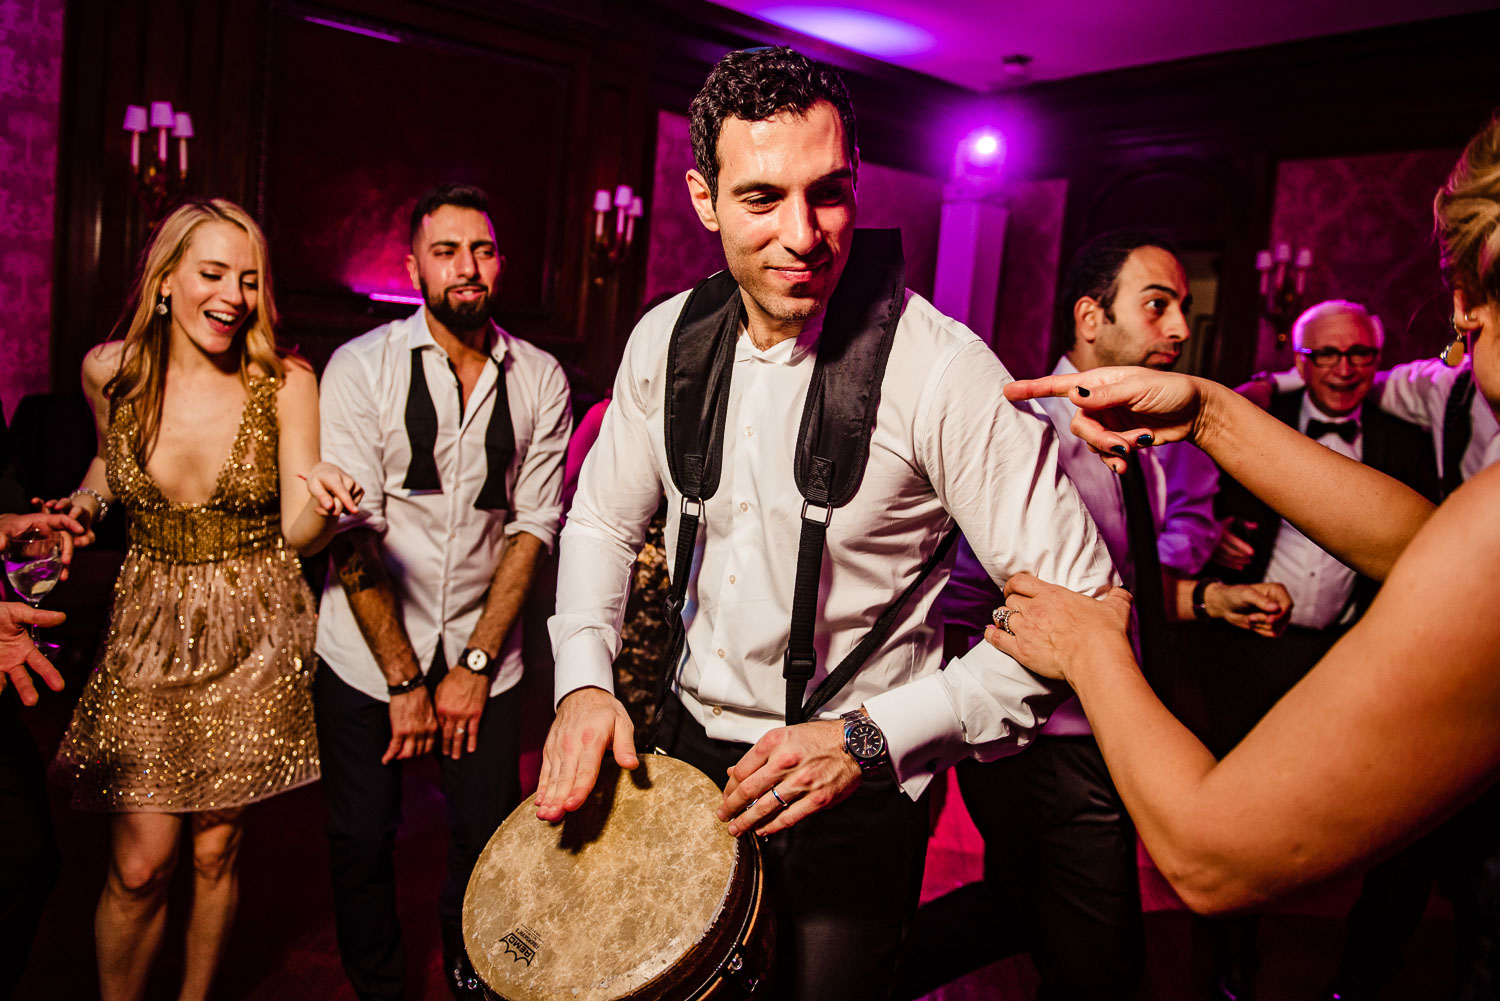 Groom plays drums during recption